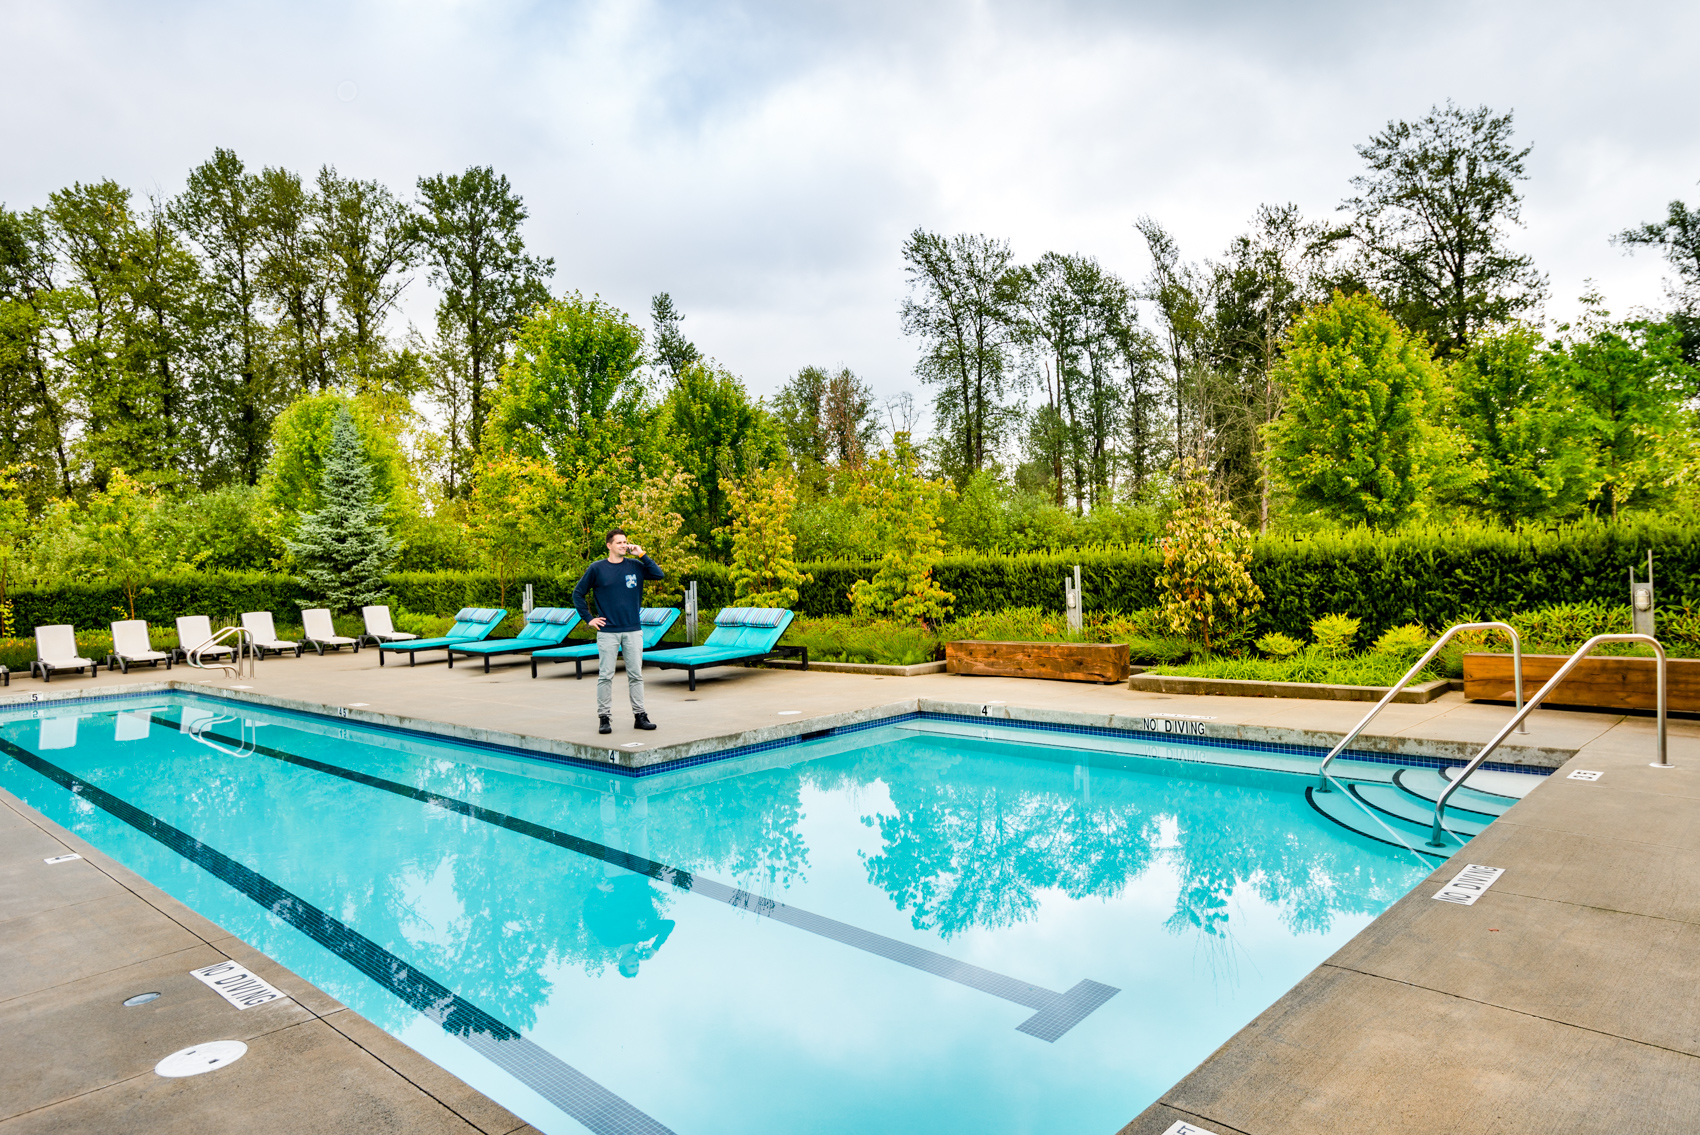 Water amenities like a pool often mean higher strata fees.